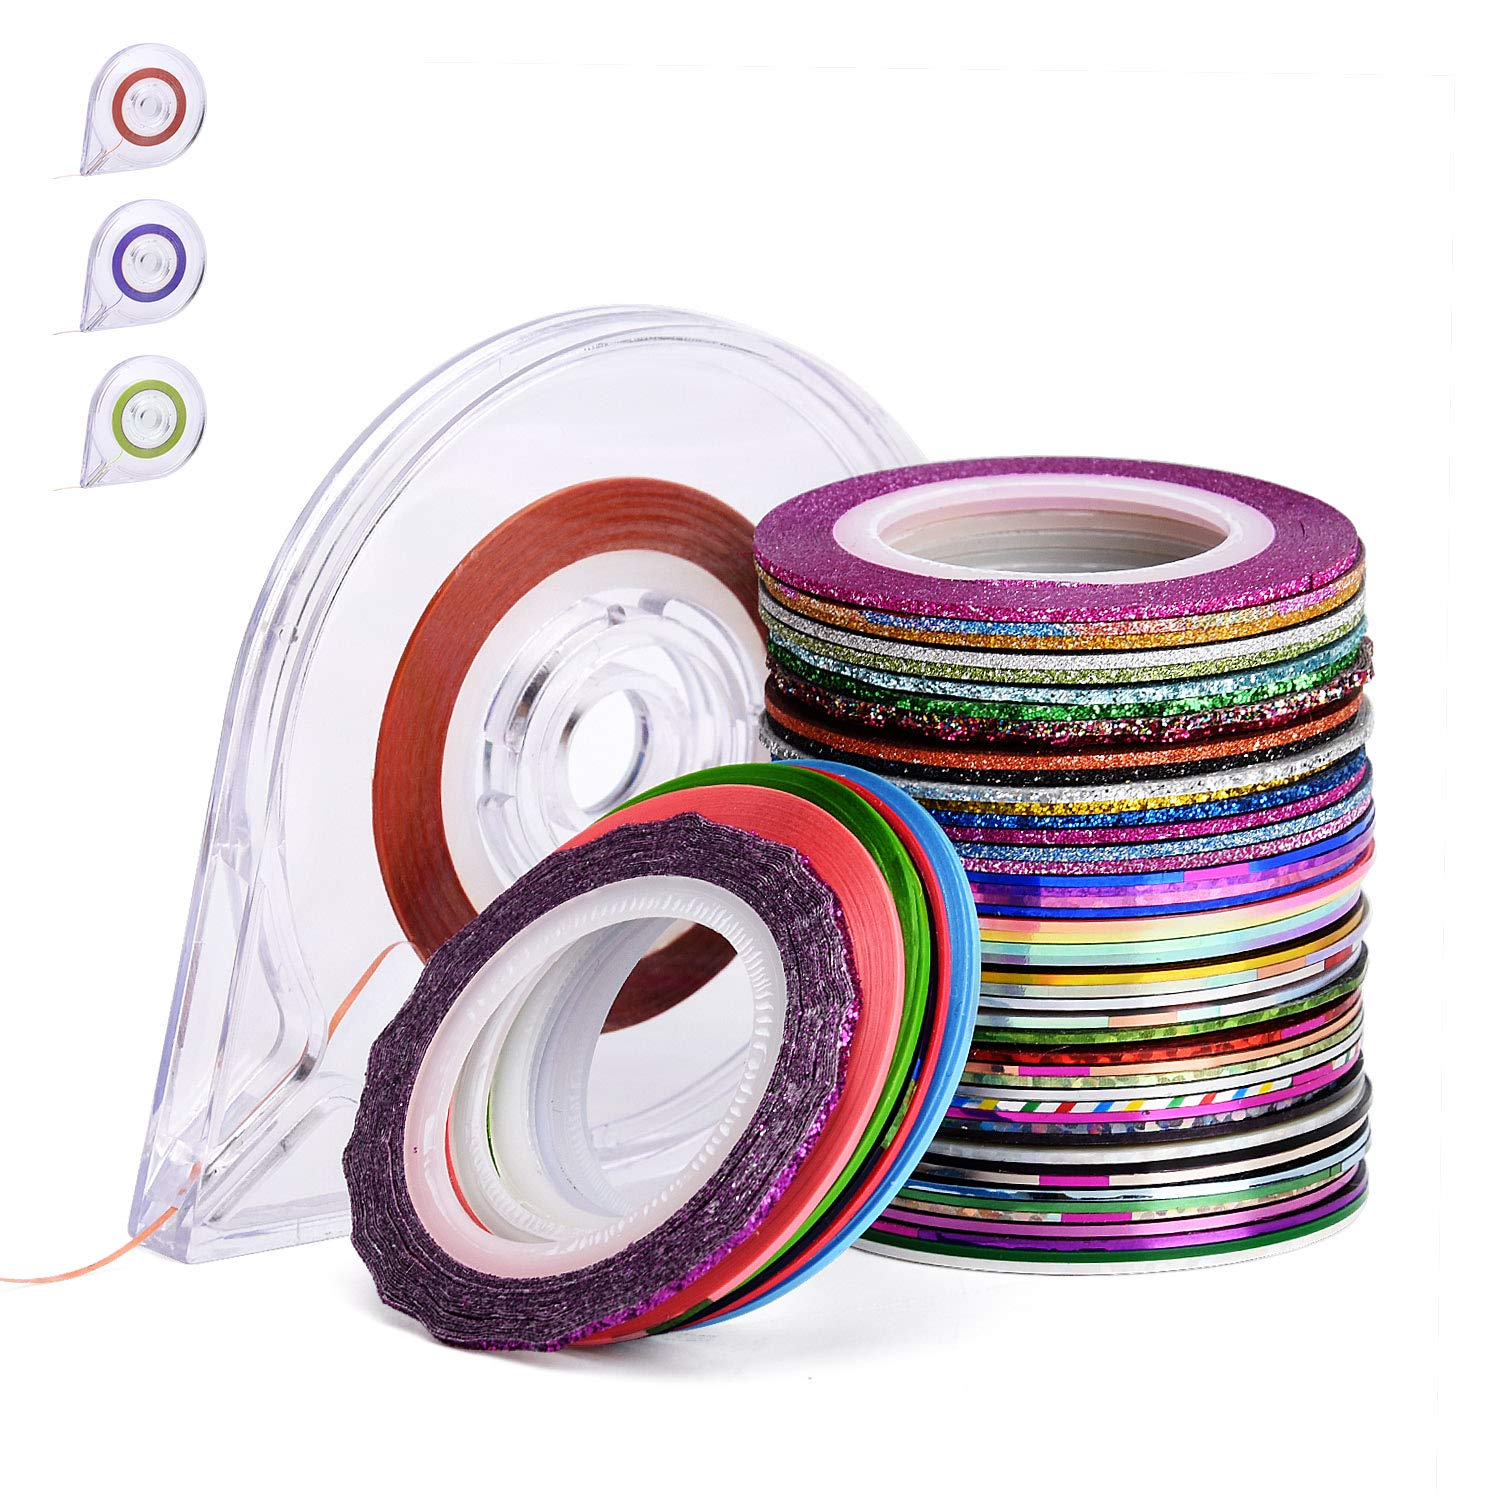 Noverlife 57 Mixed Color 1mm Nail Art Striping Tape Lines, Self-adhesive Matt Glitter Nail Design Stickers, Manicure Shimmer Nail Tips Decal Decoration for DIY Craft Making, 4PCS Tape Roller Dispenser by Noverlife